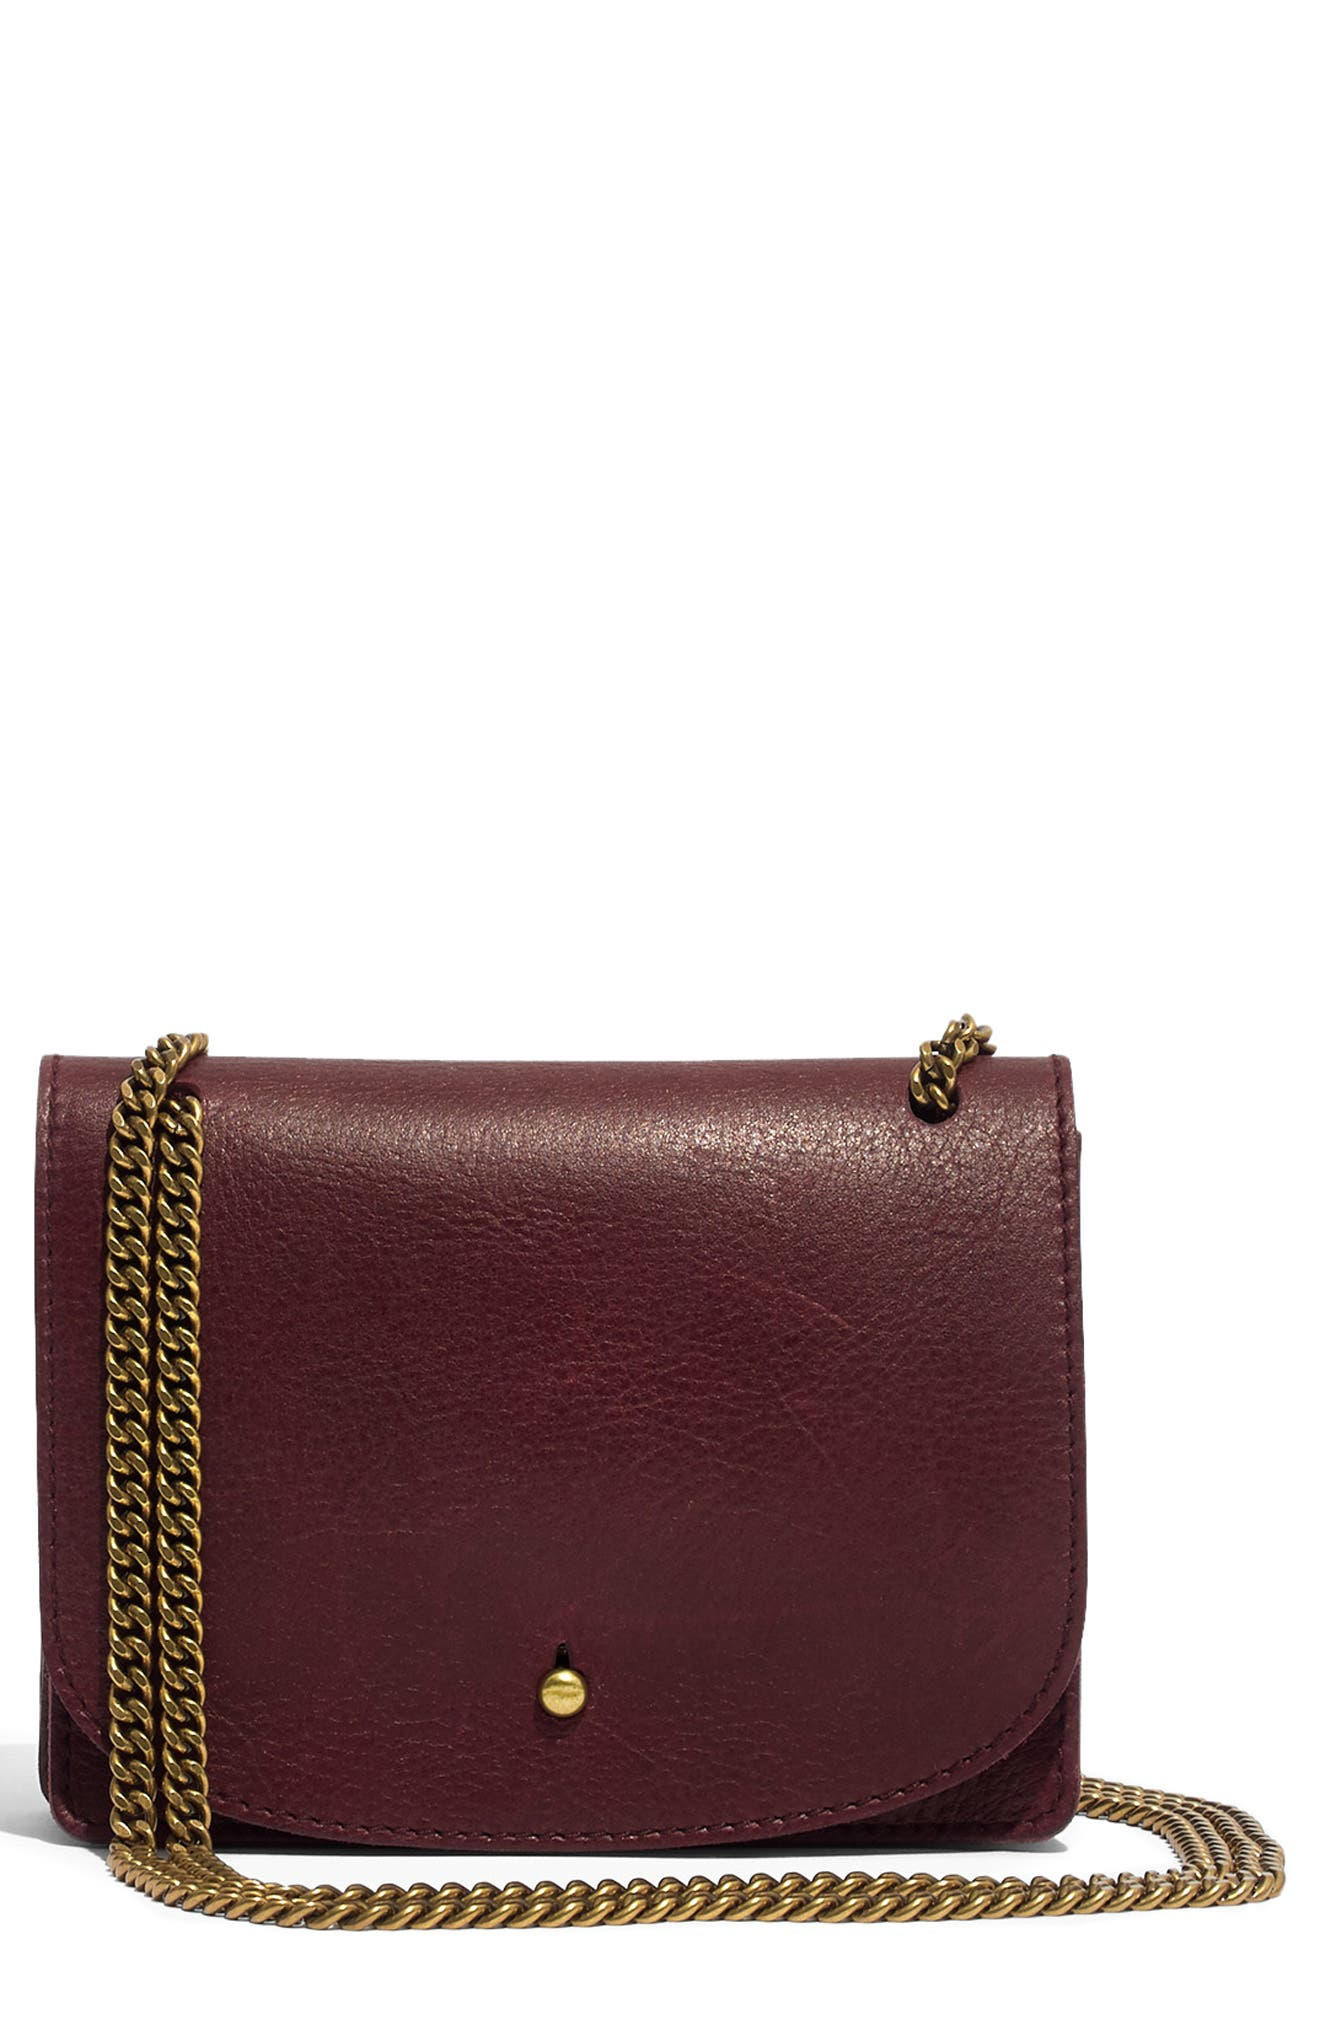 MADEWELL,                             Leather Crossbody Wallet,                             Main thumbnail 1, color,                             DARK CABERNET